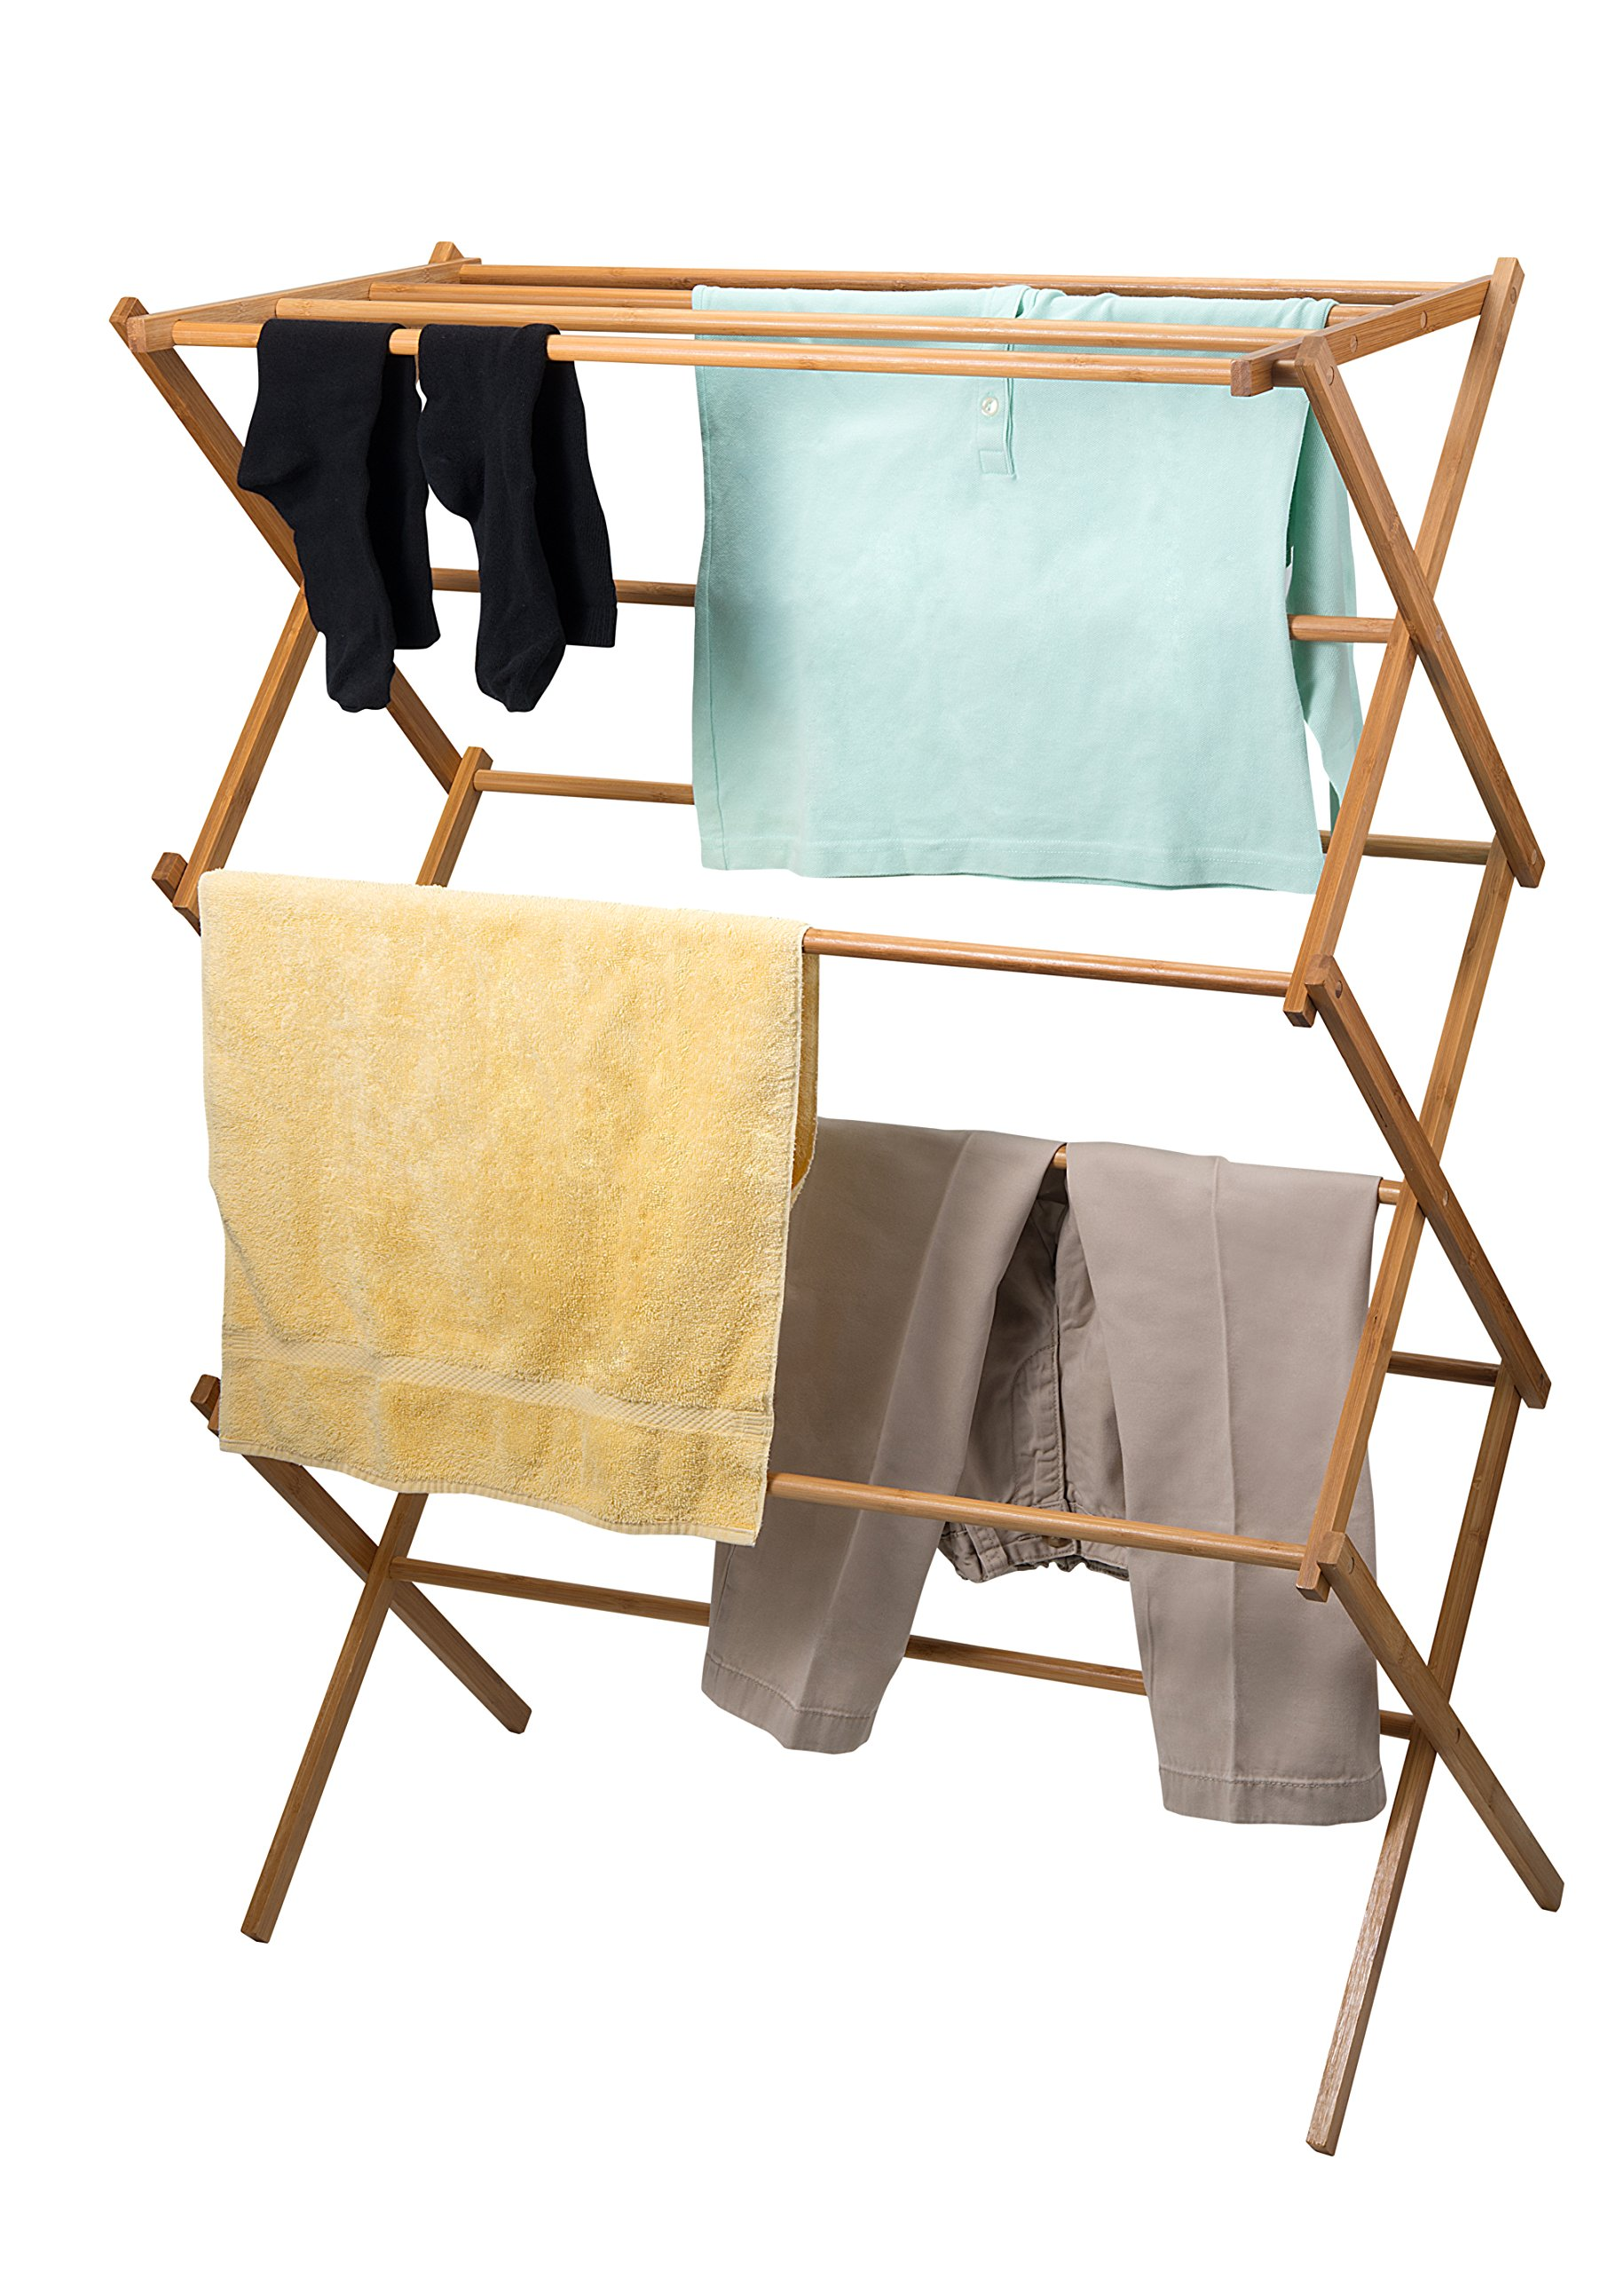 Home-it clothes drying rack - Bamboo Wooden clothes rack  - heavy duty cloth drying stand by Home-it (Image #2)